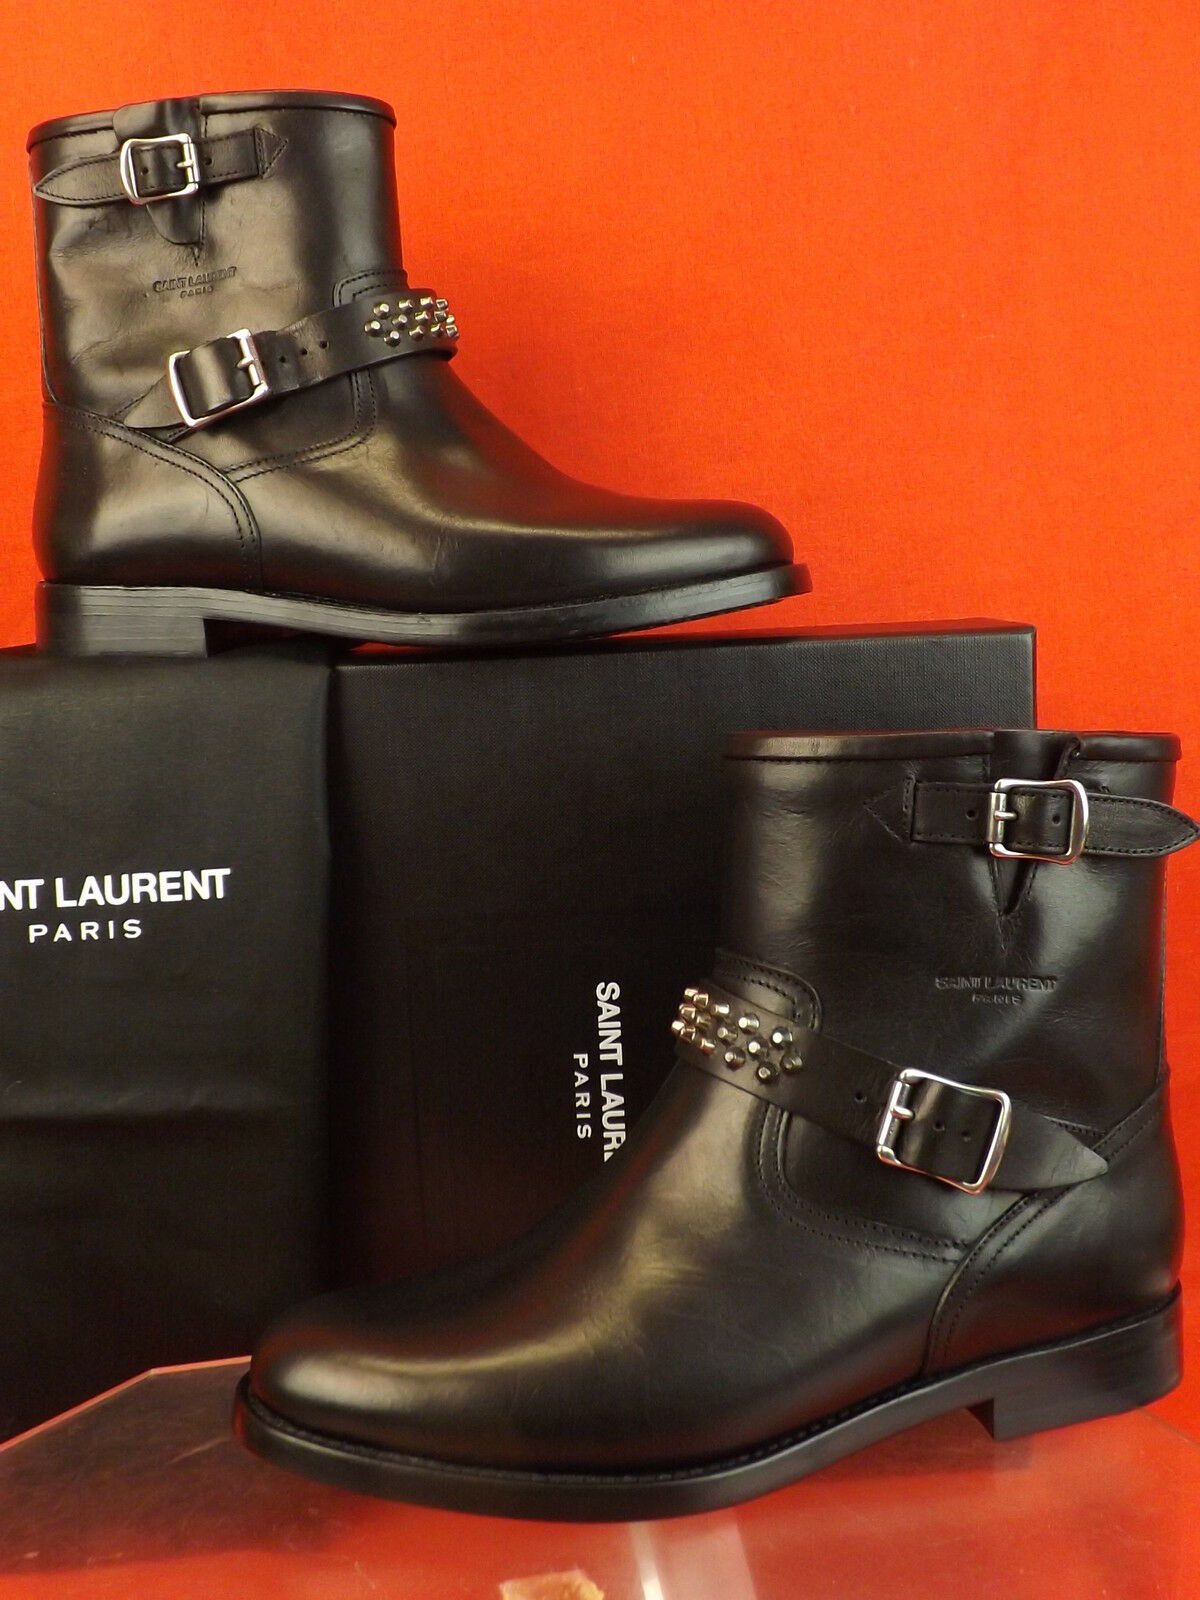 NIB LAURENT YSL SAINT LAURENT NIB BLACK LEATHER STUDDED MOTO BIKER ANKLE BOOTS 37 3b78e3